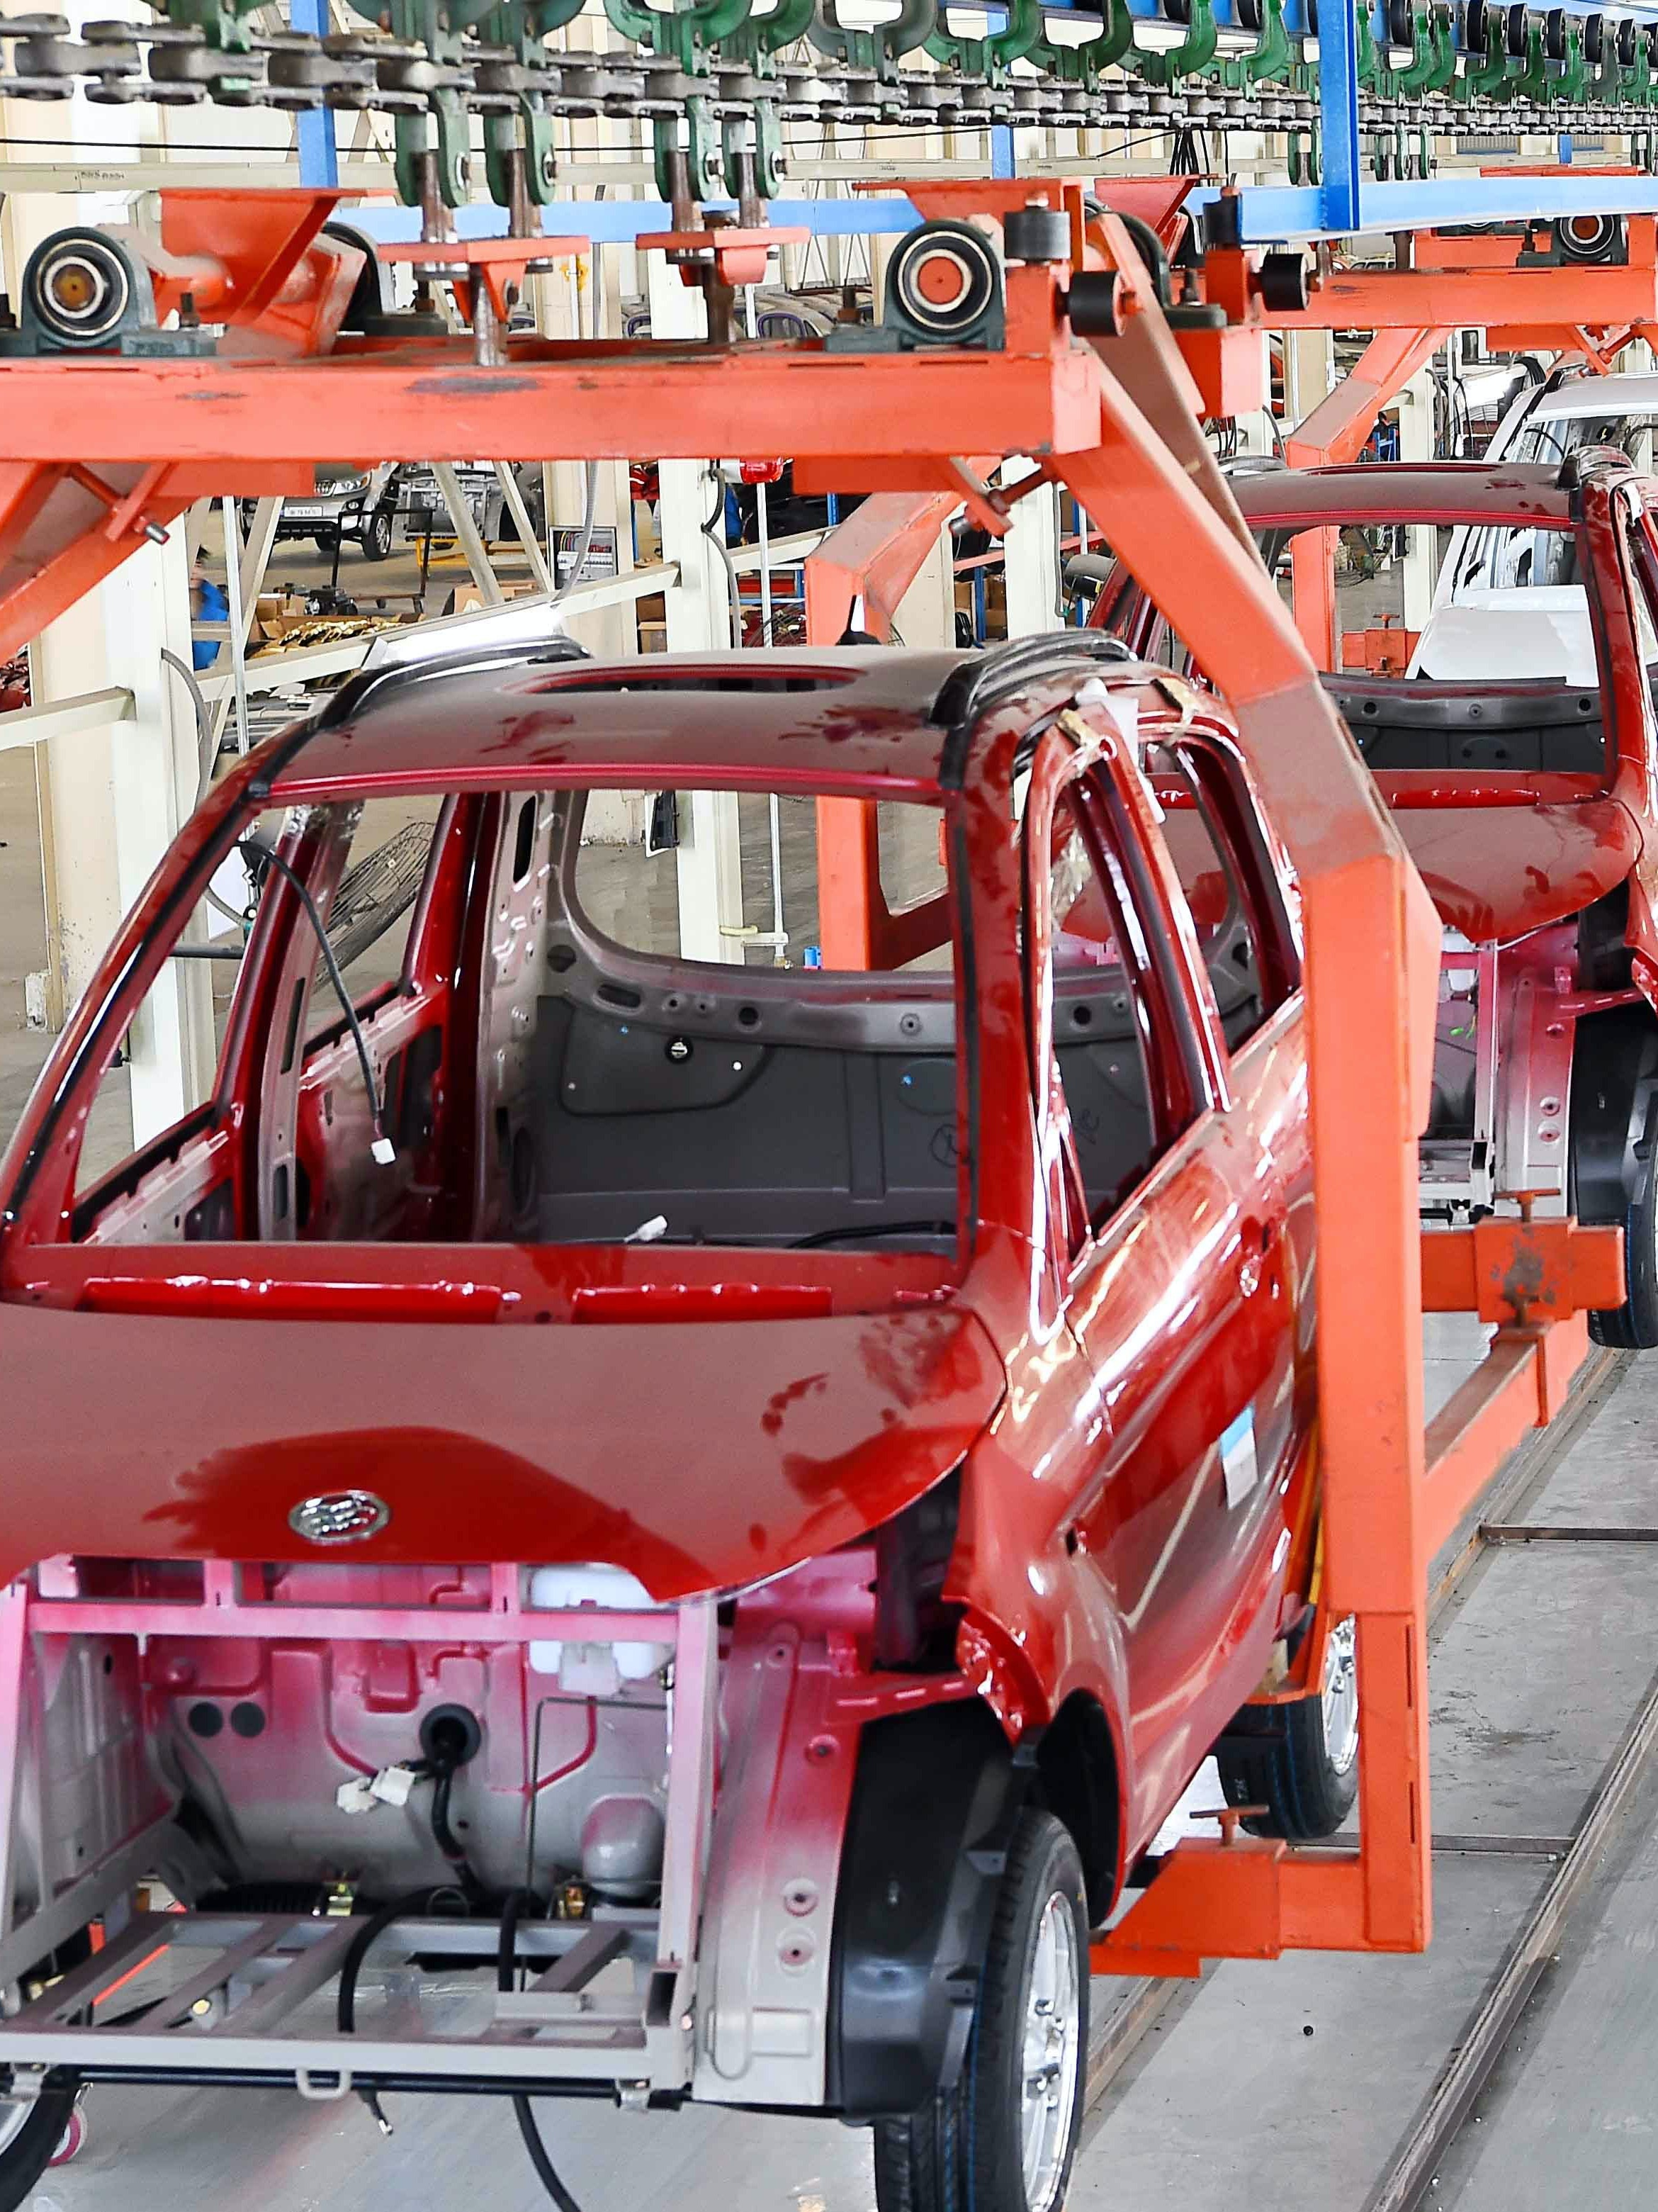 WEIFANG, CHINA - MARCH 01: (CHINA OUT) Workers assemble electric automobiles at a workshop in Qingzhou City on March 1, 2016 in Weifang, Shandong Province of China. The manufacturing sector in China continued to contract in February, and at a faster pace, with a PMI score of 49.0, the National Bureau of Statistics said on Tuesday. (Photo by VCG/VCG via Getty Images)